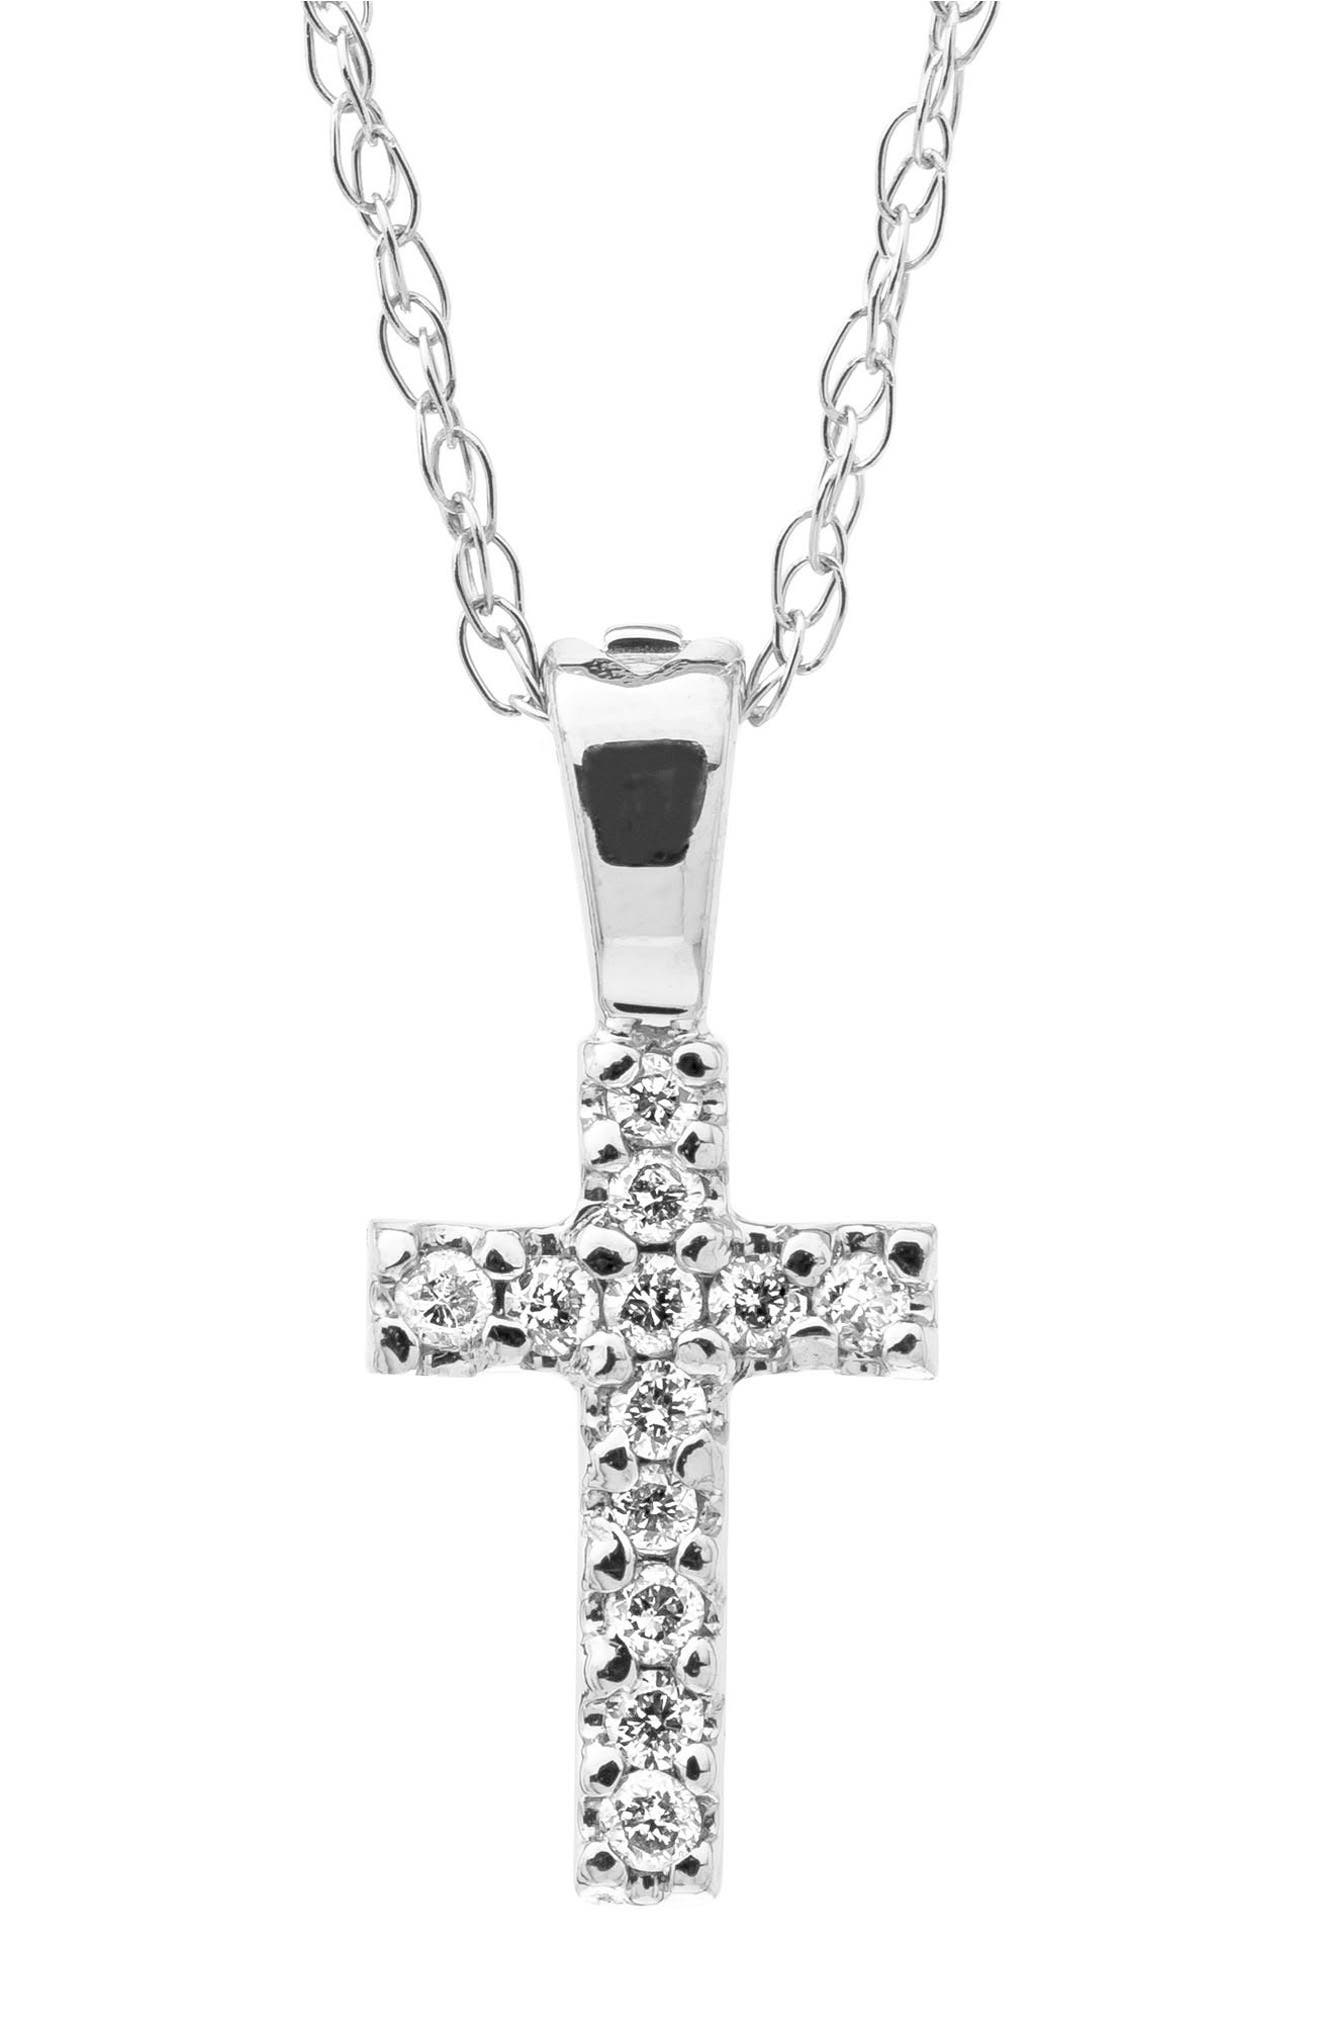 14k White Gold & Diamond Cross Necklace,                         Main,                         color, White